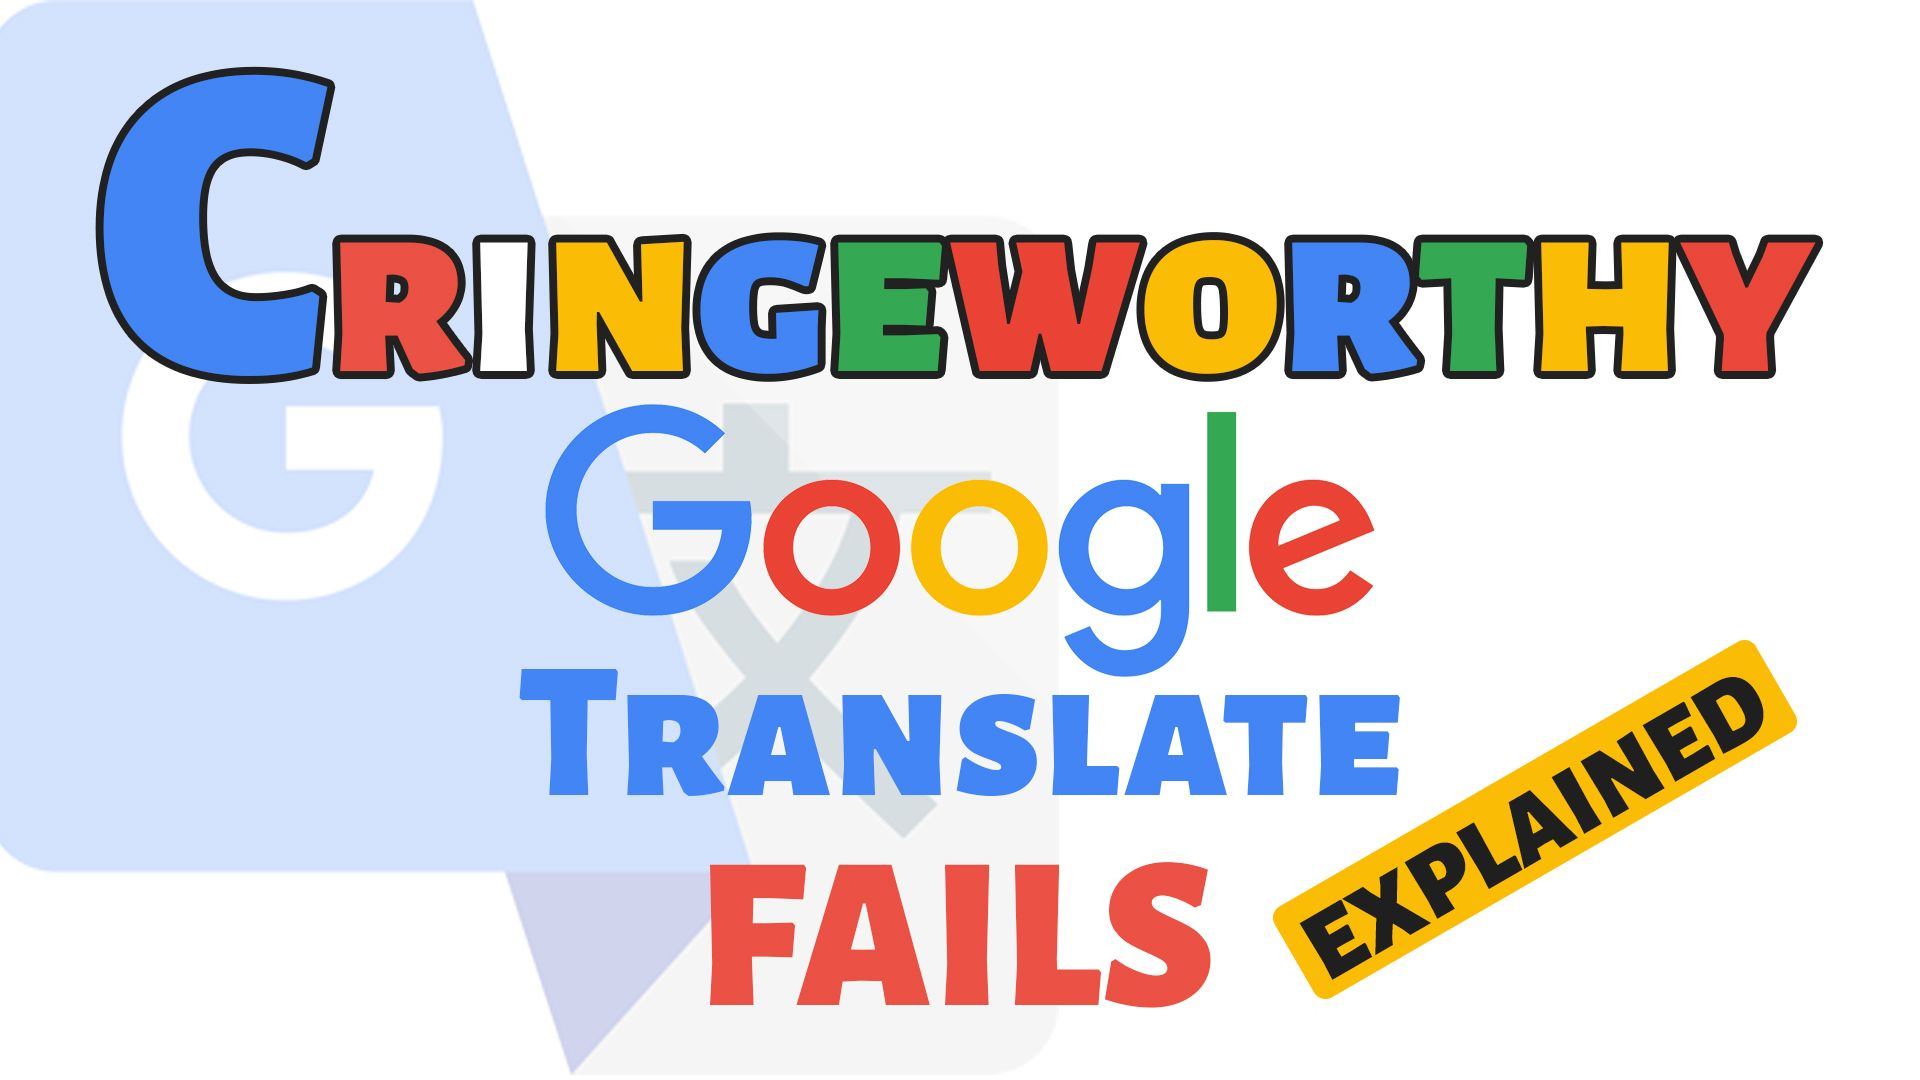 Cringeworthy Bad Google Translate Fails Explained